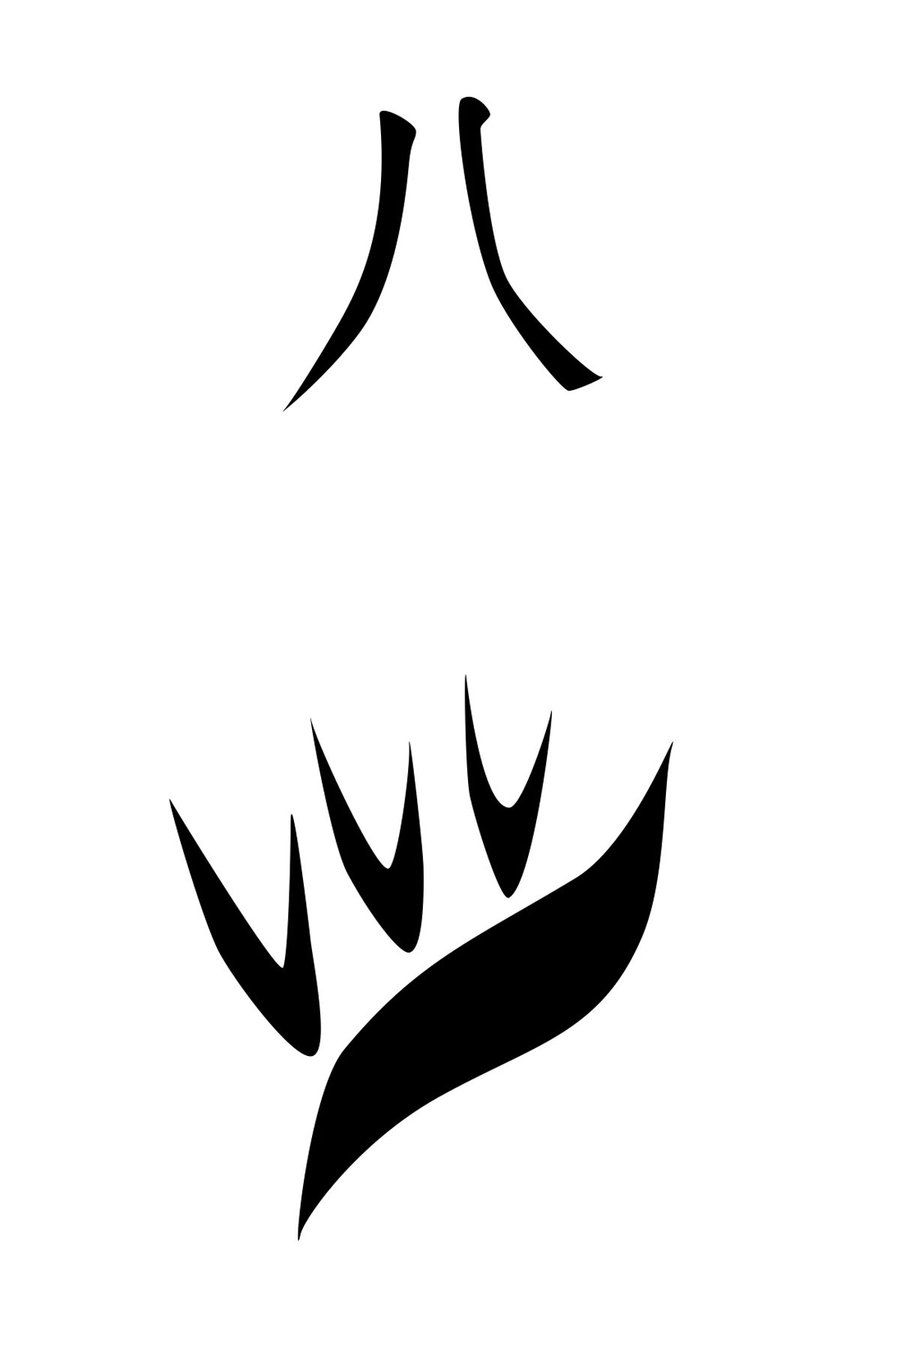 Bleach Captains Division Anime Tattoo Stencils Flower Meanings Bird Of Paradise Shinigami Numbers